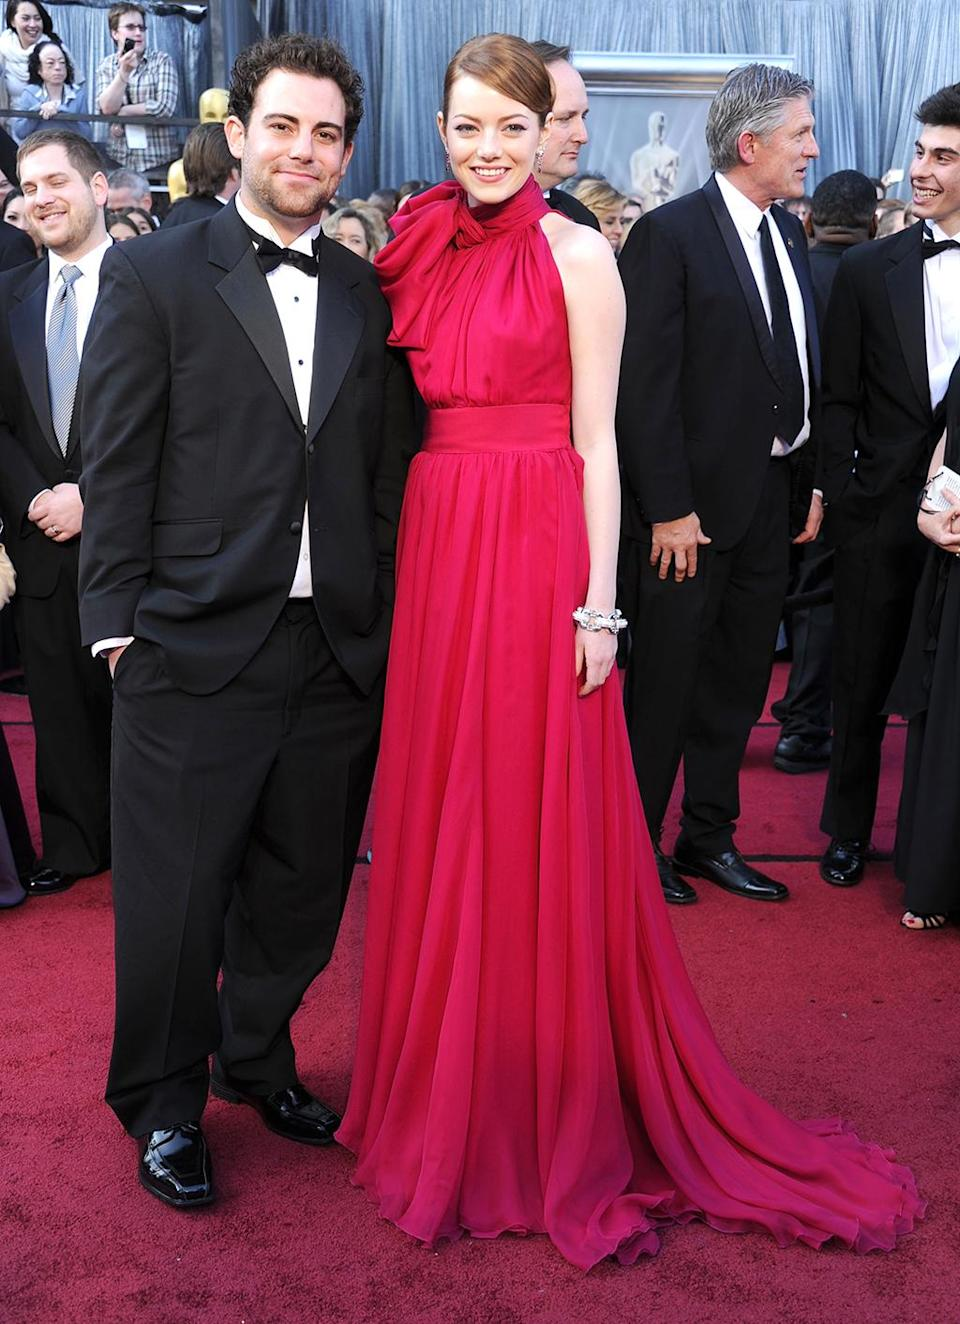 <p>Stone brought her brother, Spencer, to the 84th Annual Academy Awards, Feb. 26, 2012, to cheer on <em>The Help<em> — which was nominated for Best Picture. (Photo: Gregg DeGuire/FilmMagic) </em></em></p>